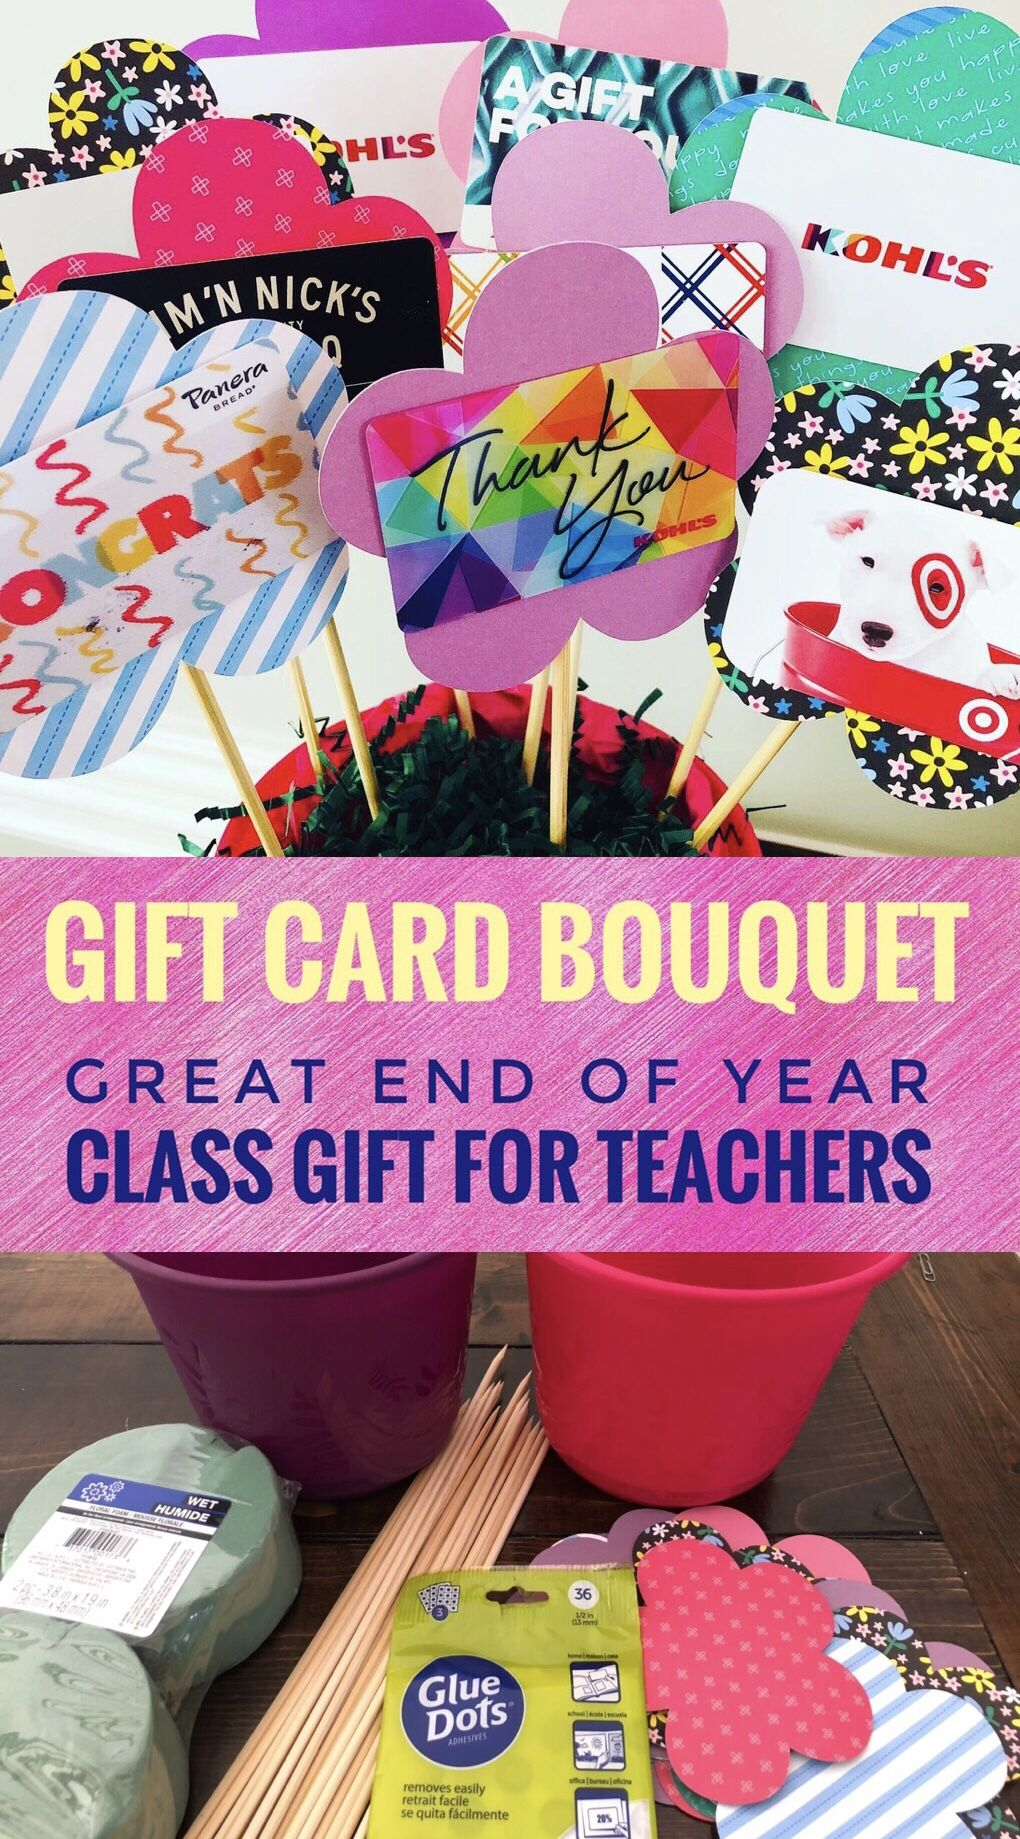 Gift card bouquet for teachers in 2020 with images